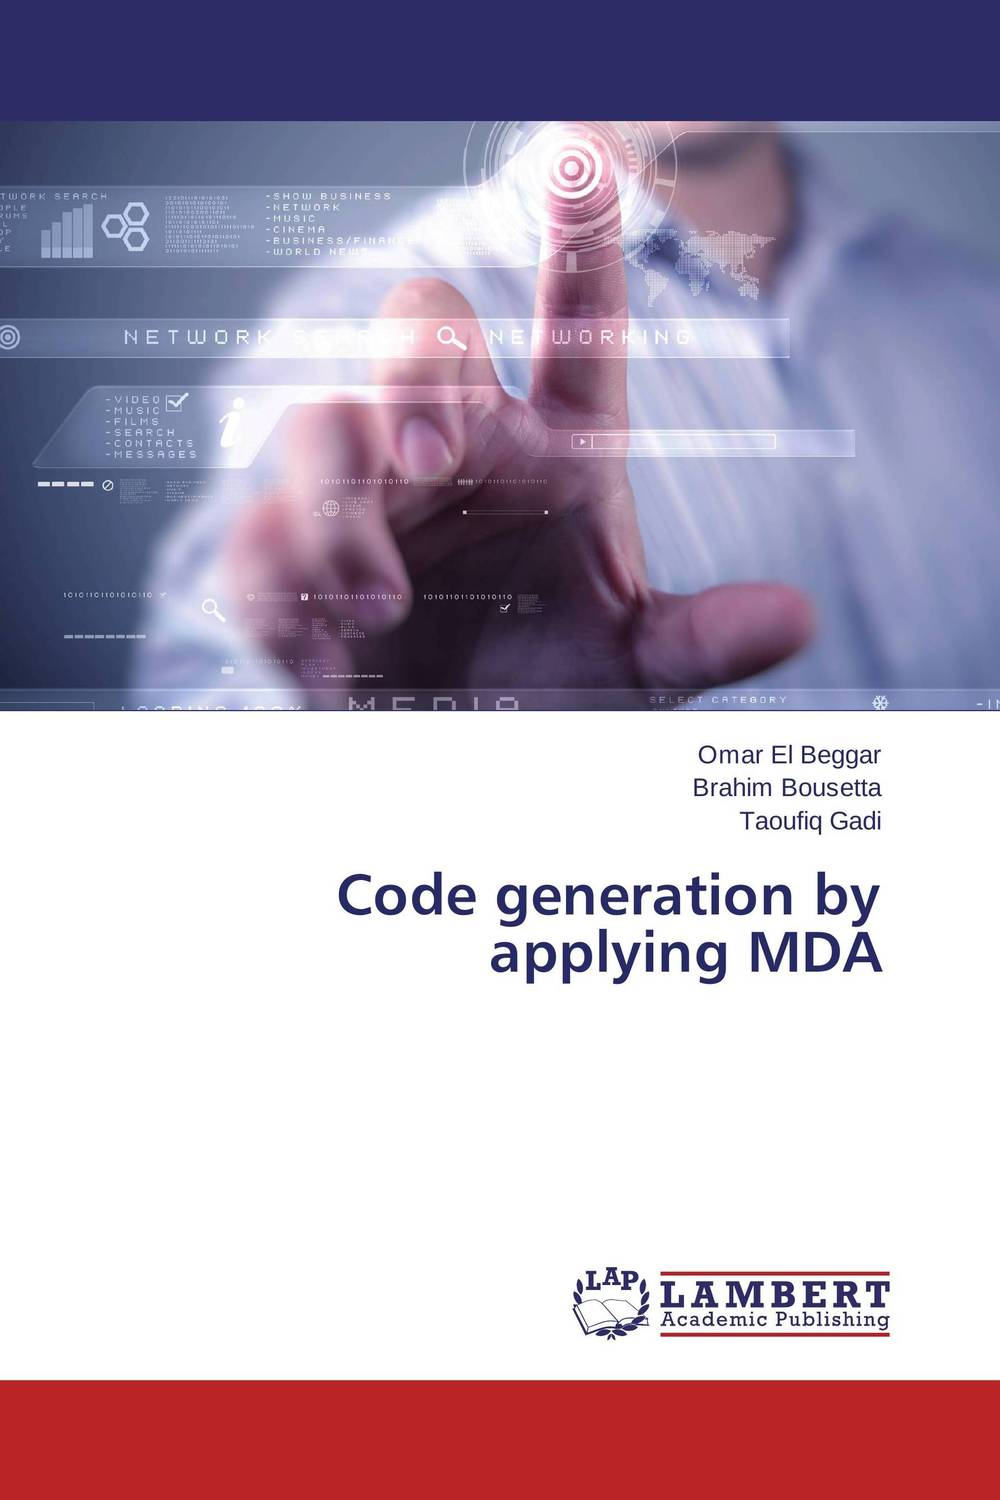 Code generation by applying MDA